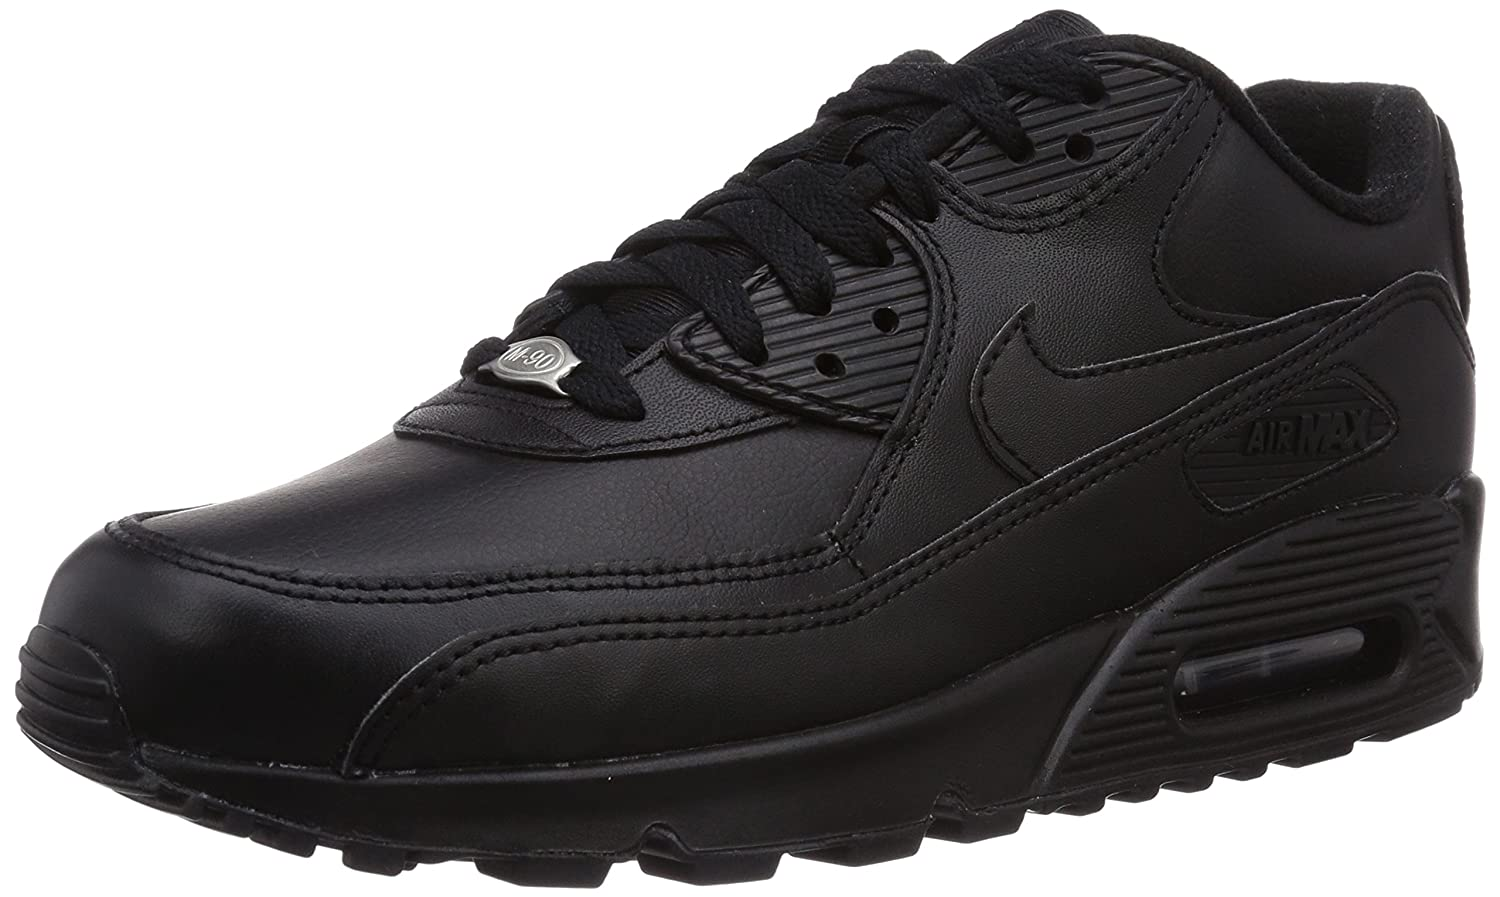 designer fashion 78009 a6519 Nike Air Max 90 Leather Mens Style: 302519-001 Size: 9 M US